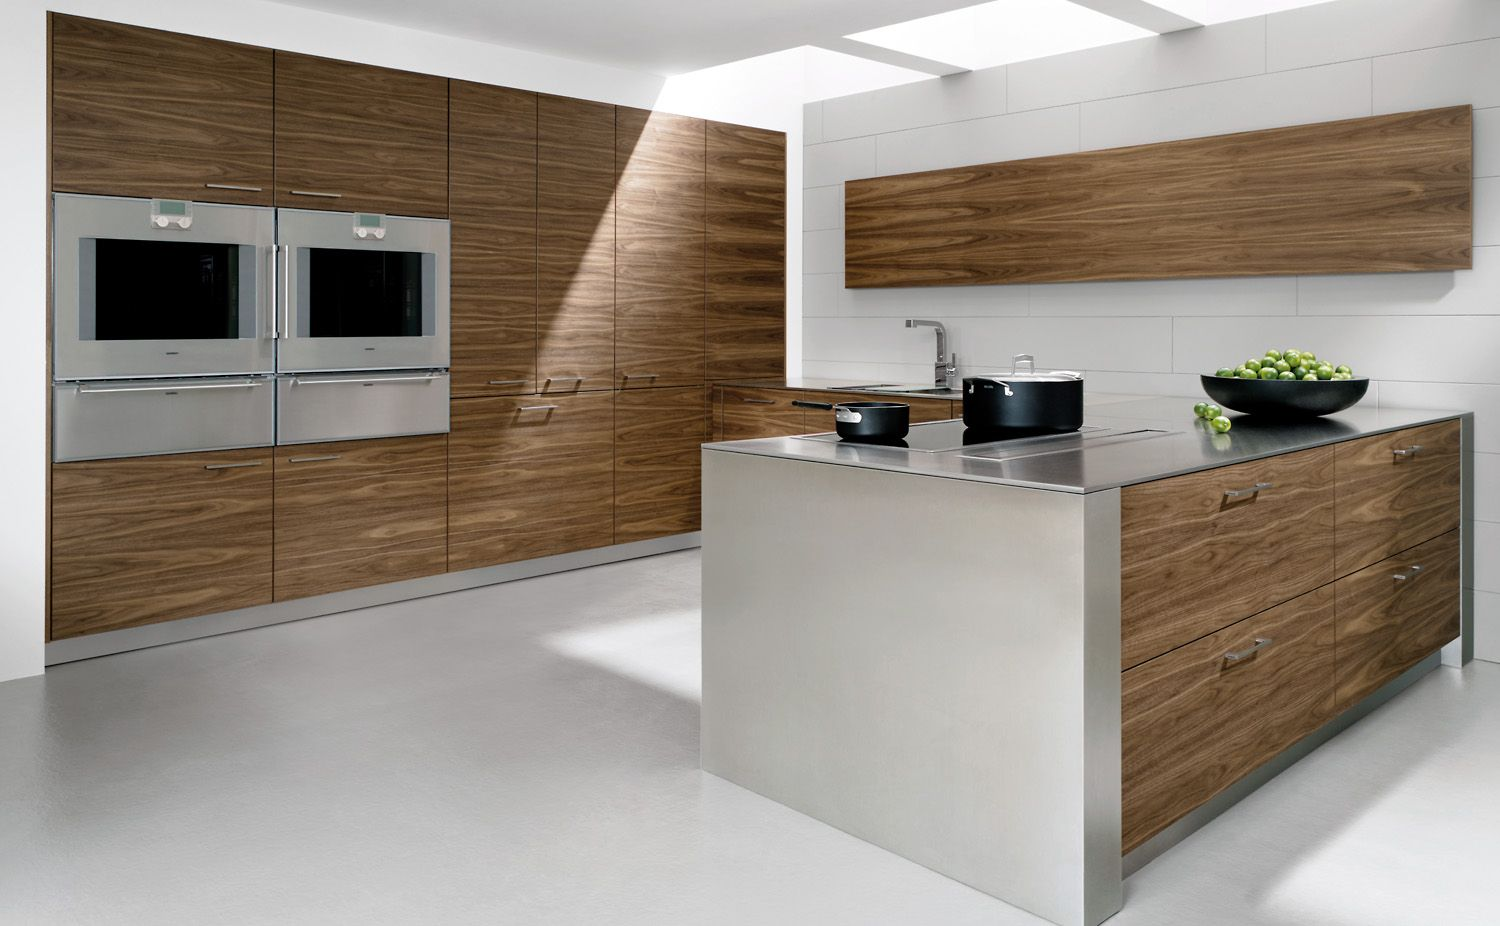 Walnut veneer kitchen design art by allmilmo pinterest for Veneer for kitchen cabinets